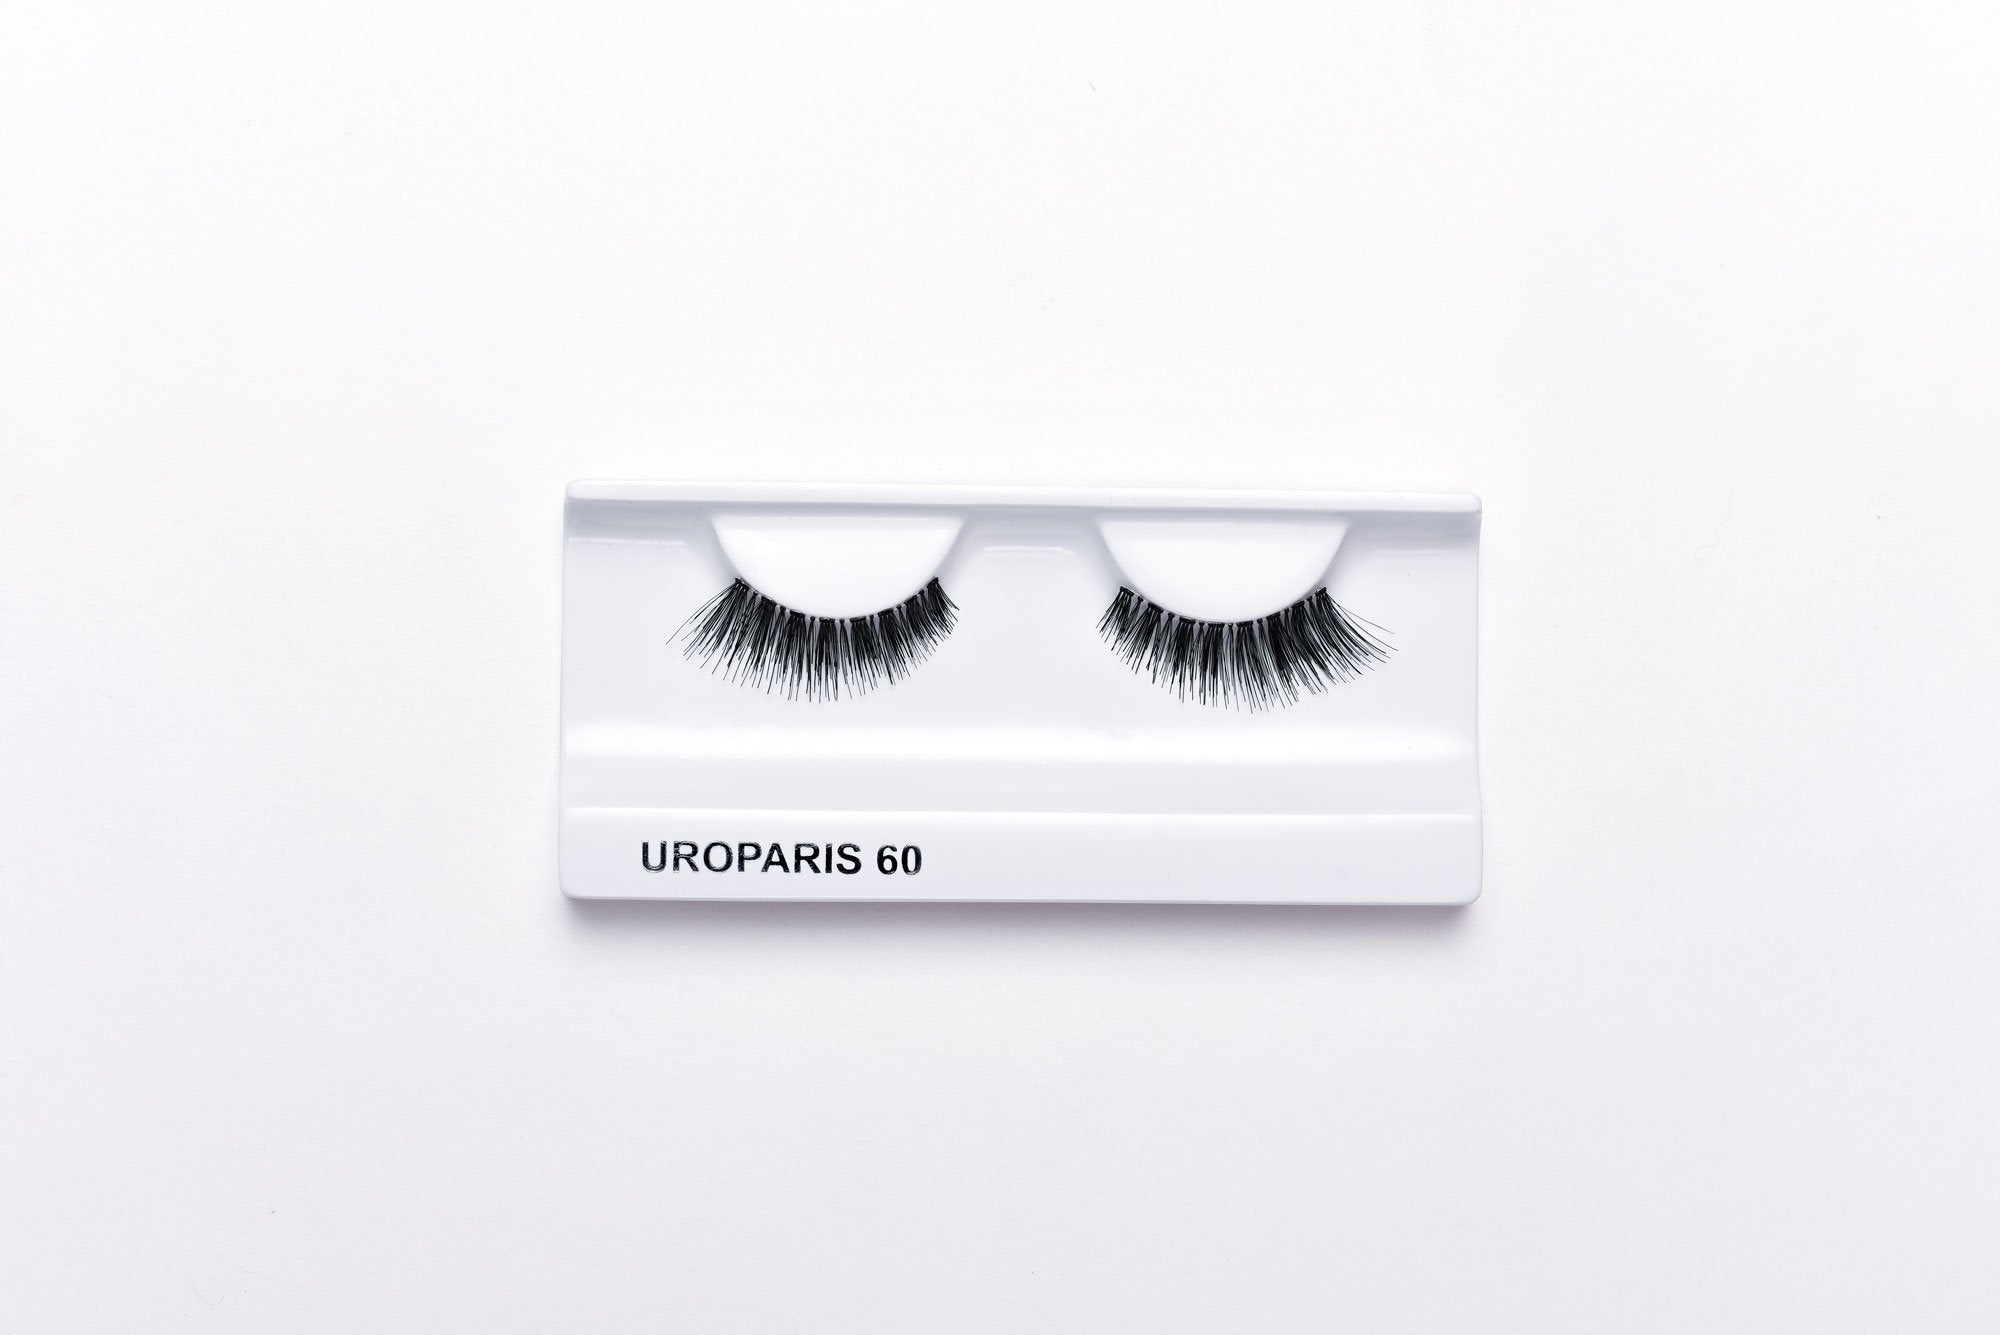 Uroparis Eyelashes 60